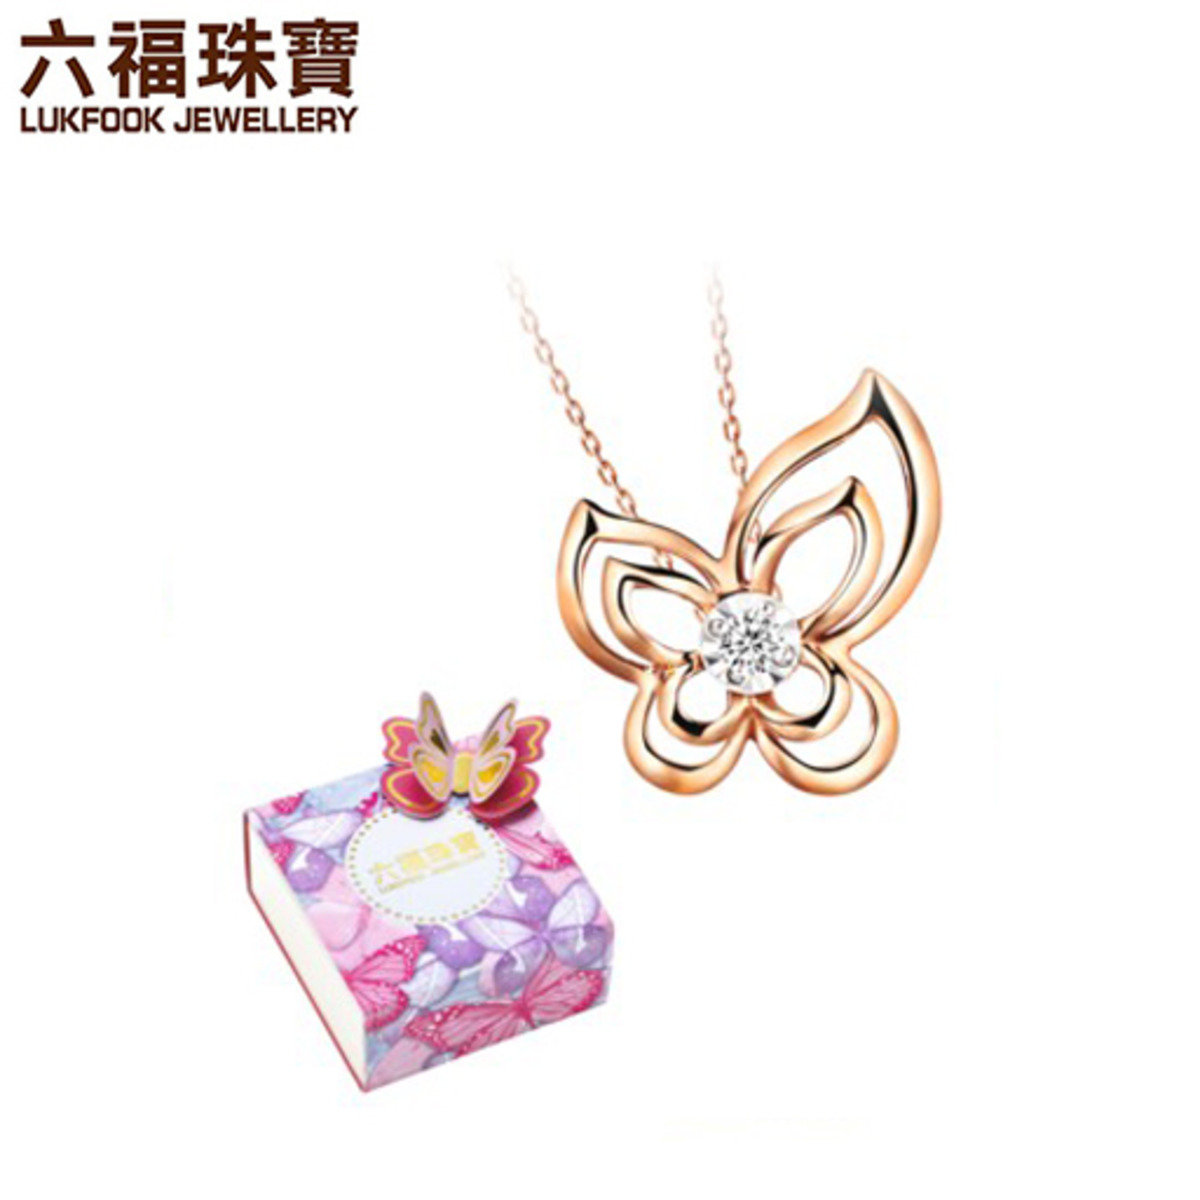 Beauty of Motherly Love Series 18K Gold Diamond Pendant Gift Set